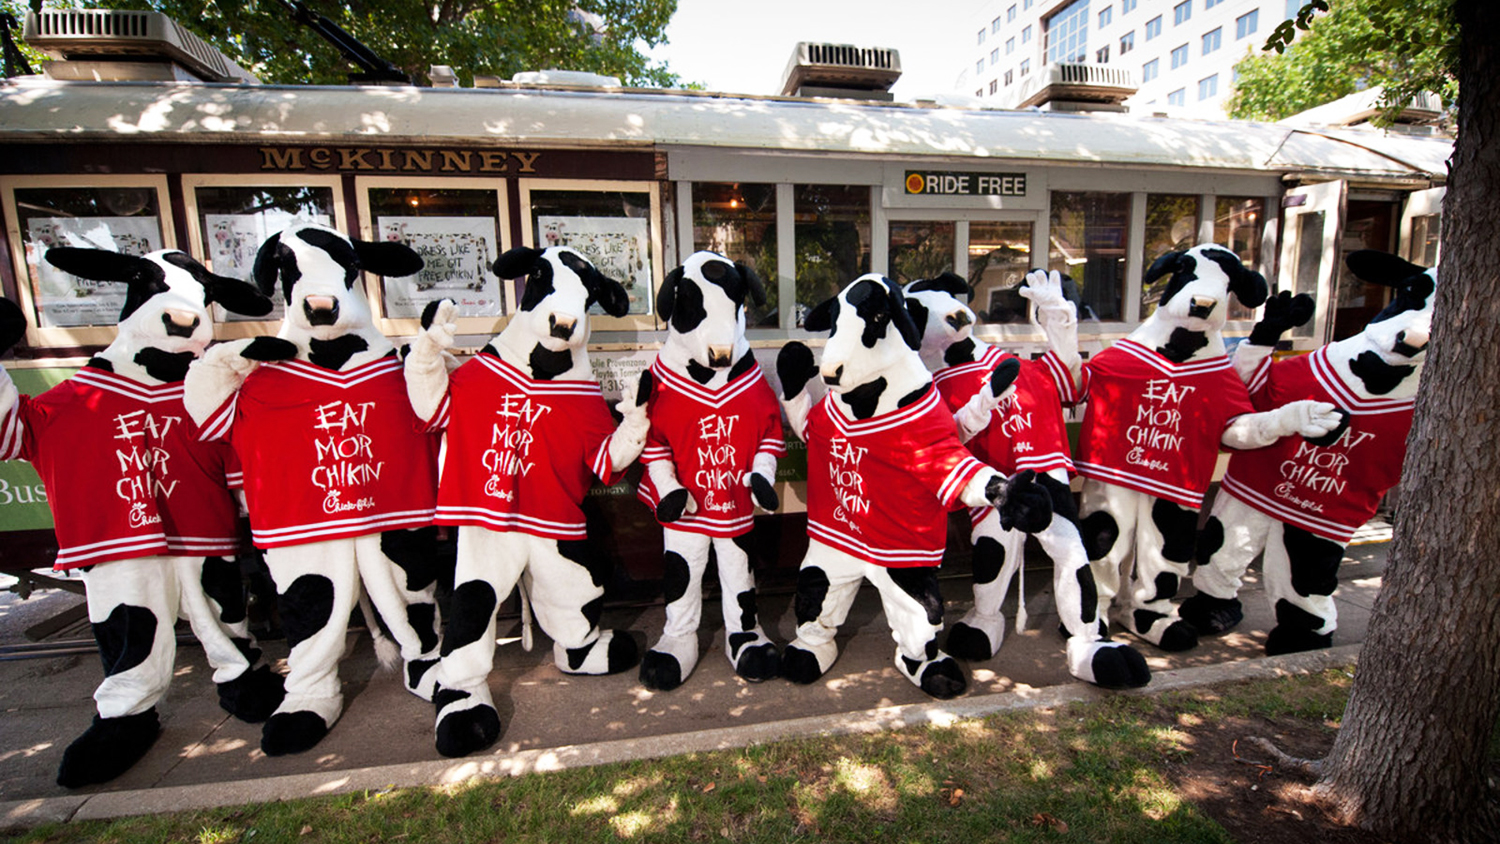 EC: How to Get Free Chick-Fil-A This Month